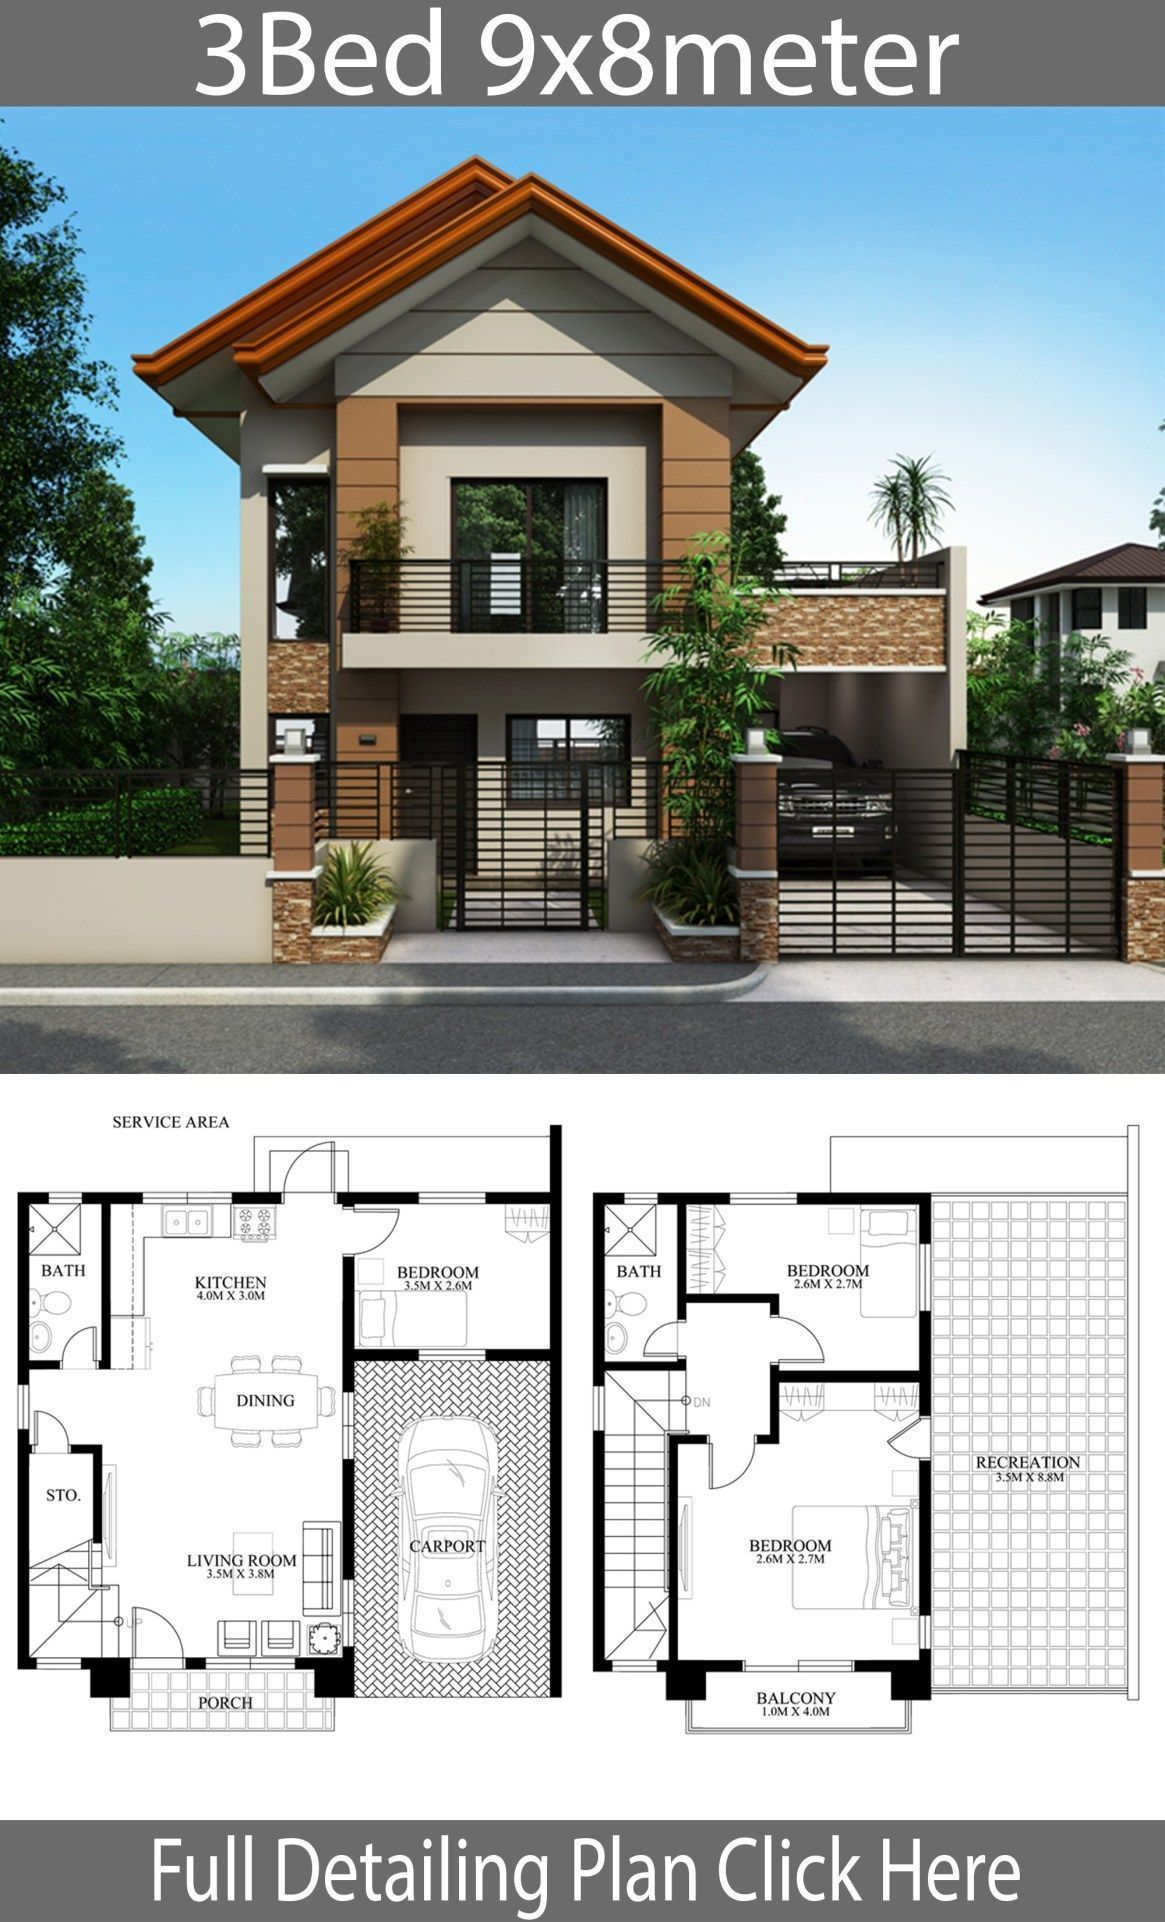 Home Design Plan 9x8m With 3 Bedrooms Philippines House Design 2 Storey House Design Philippine Houses